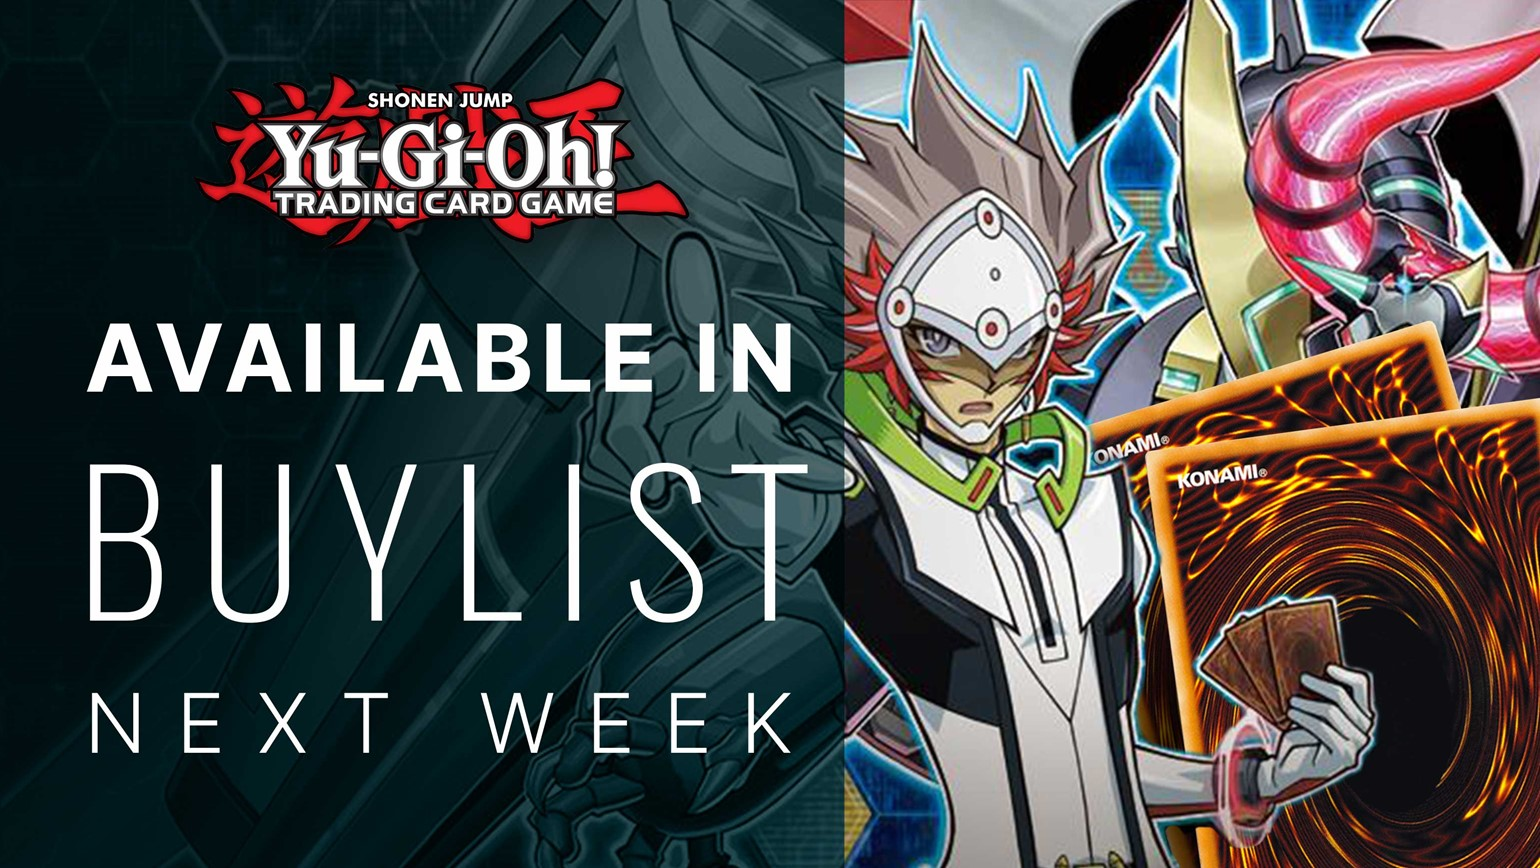 Yu-Gi-Oh! Coming Next Week to Buylist on Your TCGplayer Pro Showcase and Website